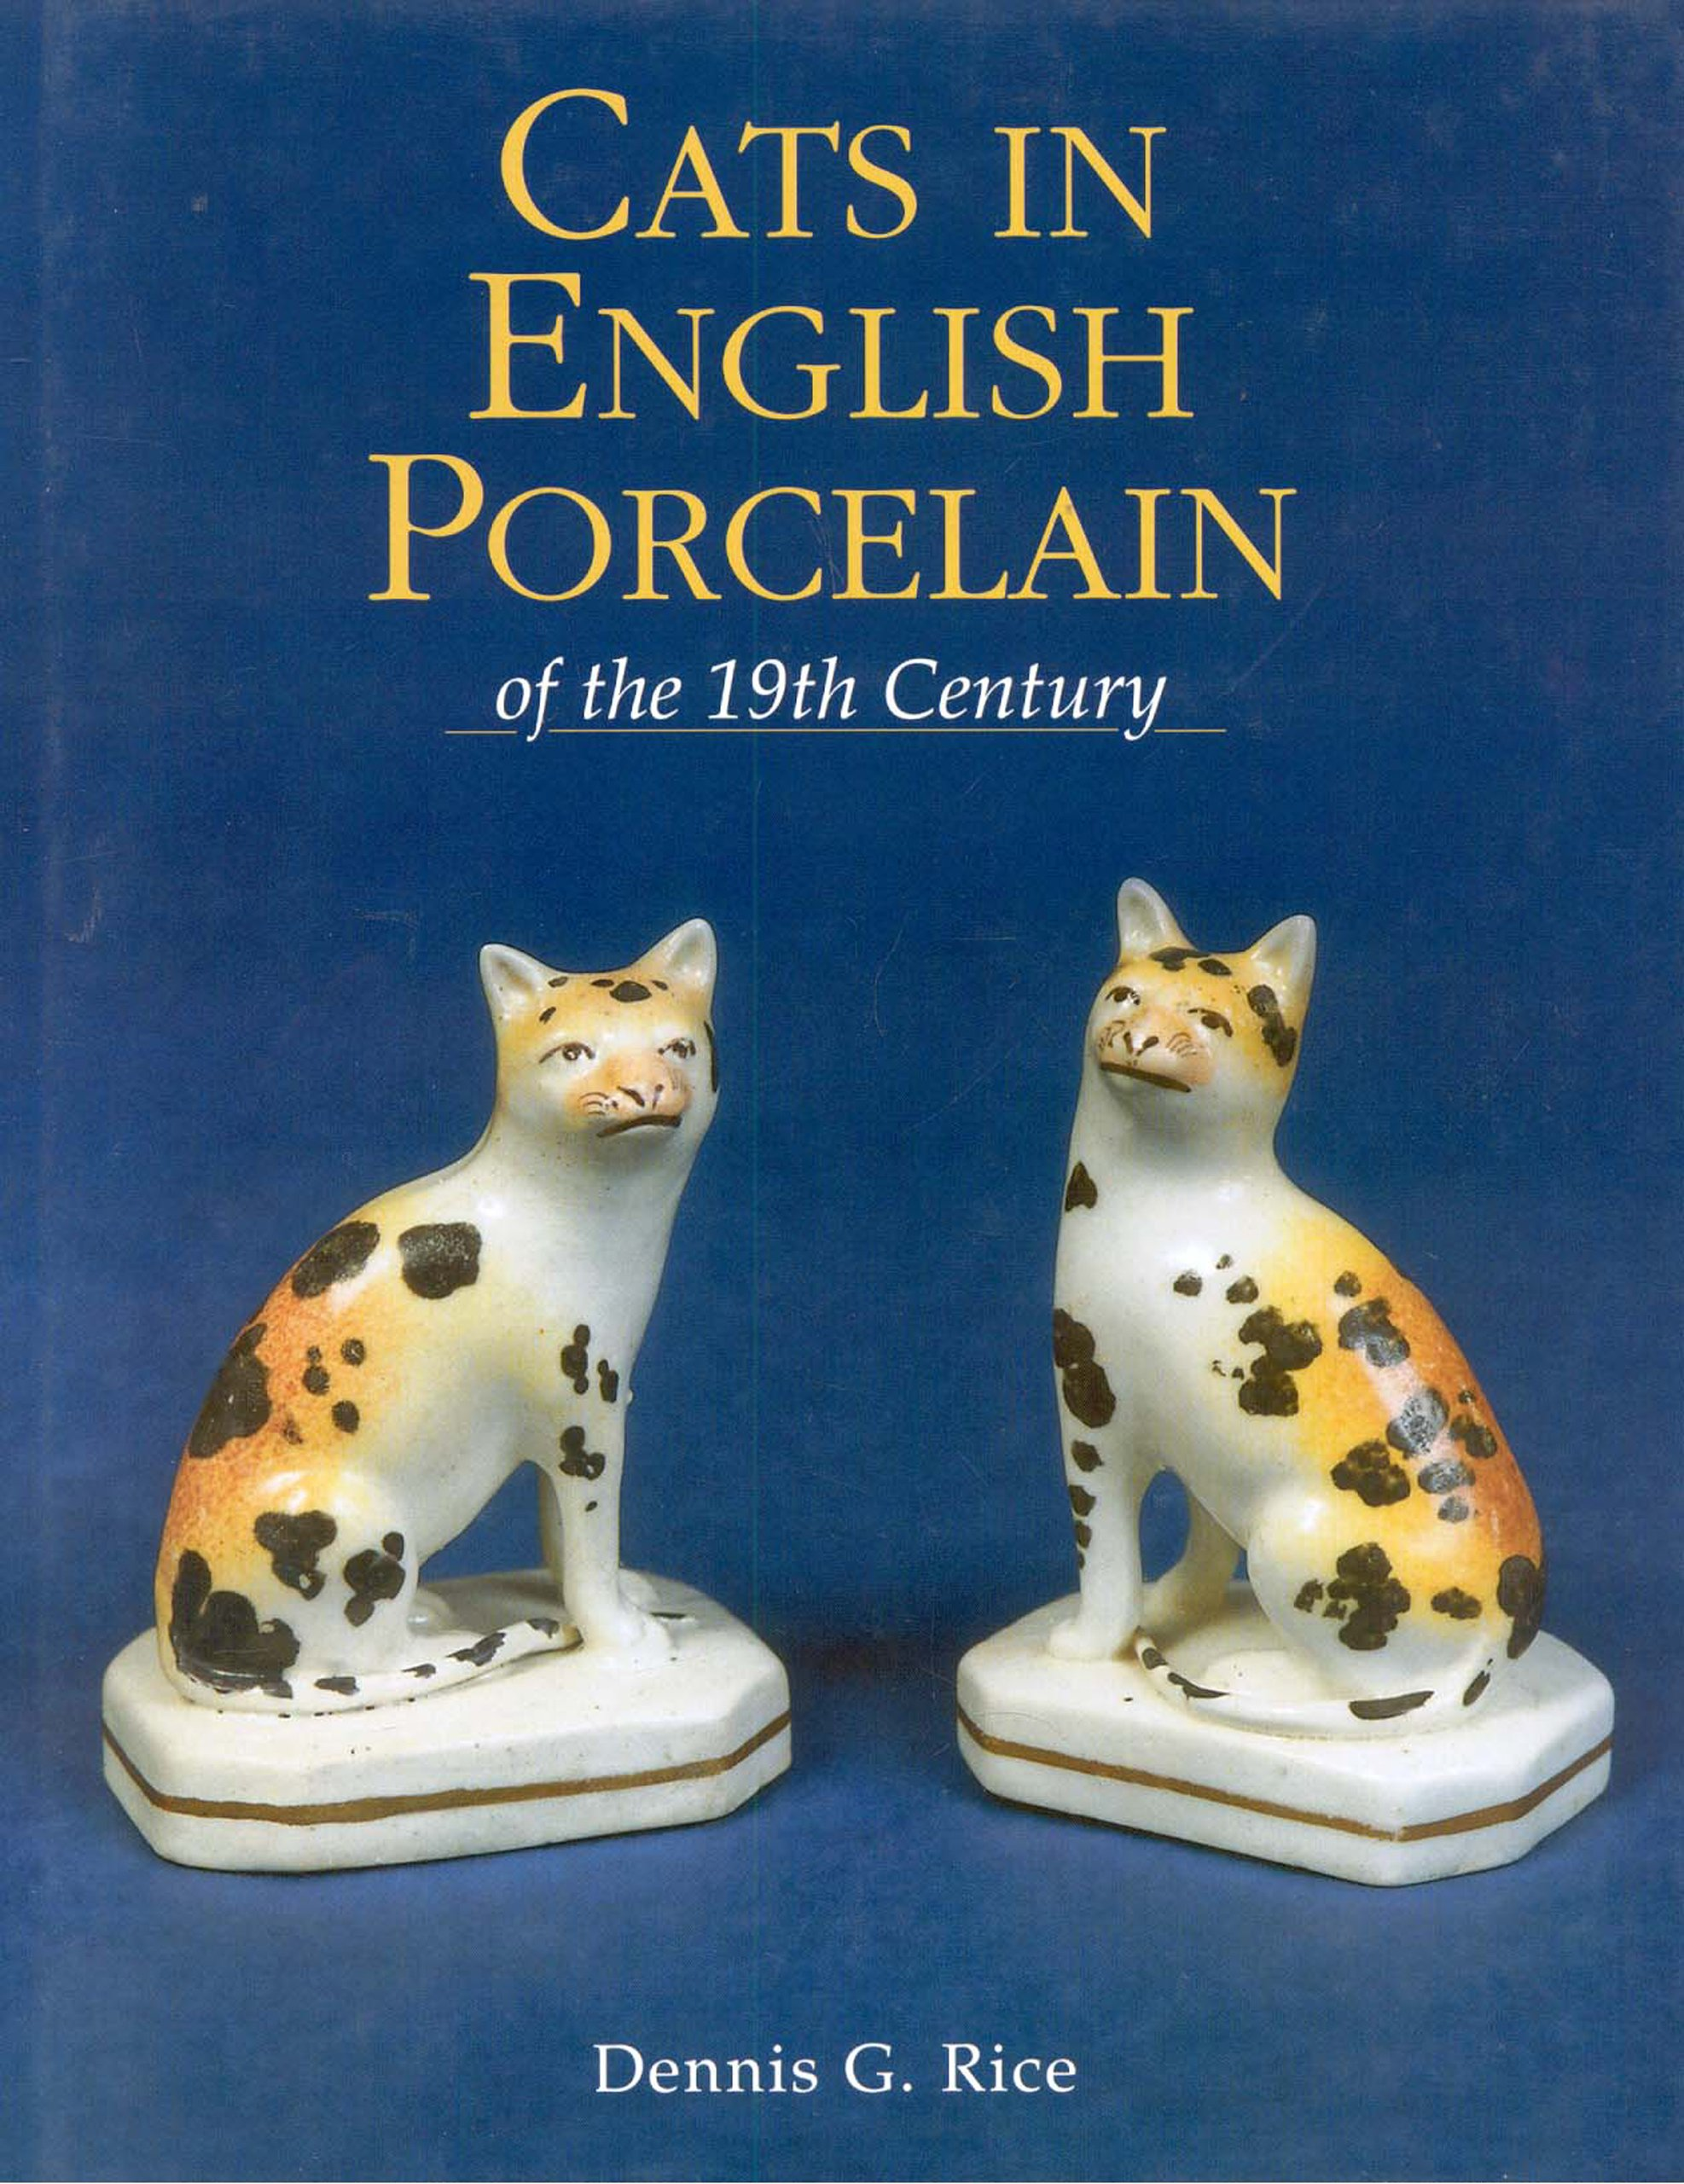 Cats in English Porcelain of the 19th Century